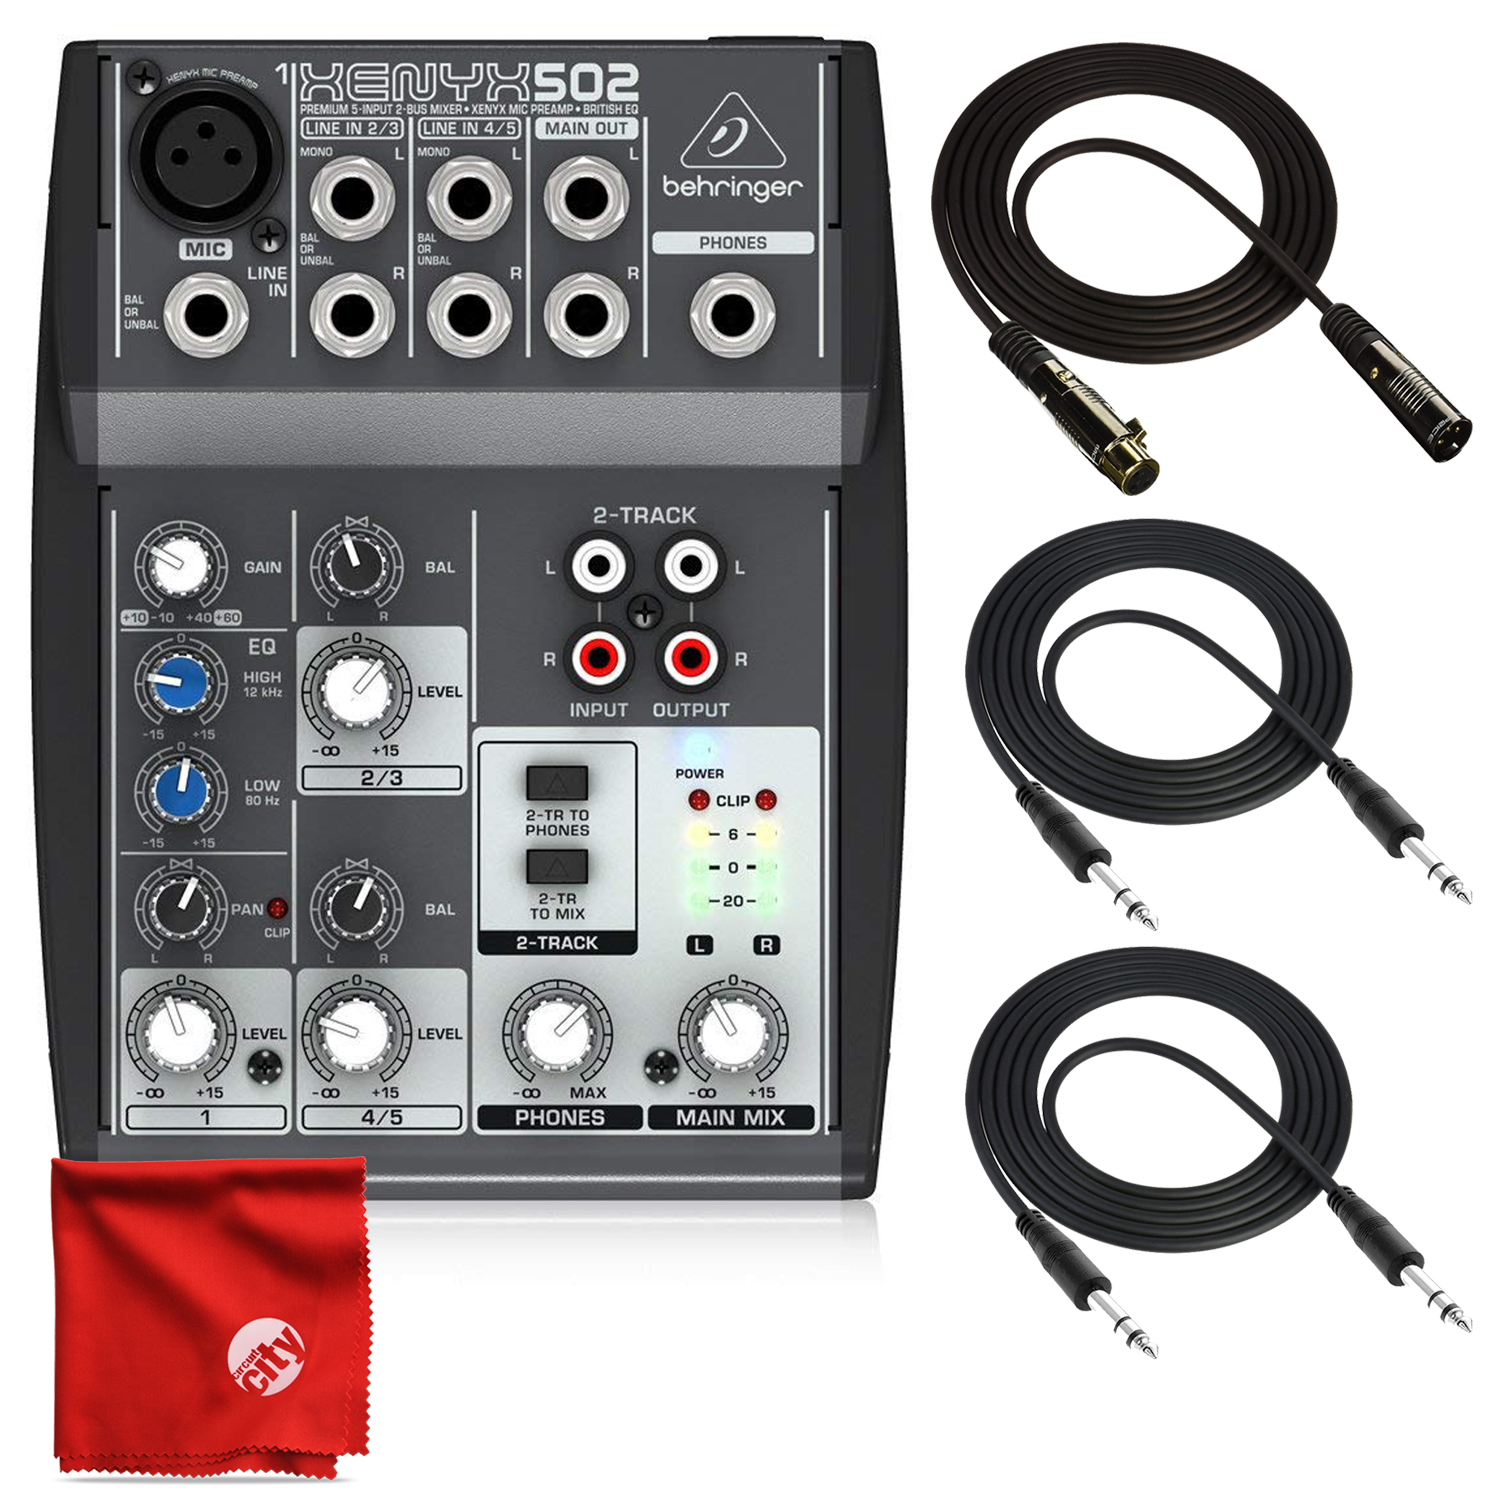 Behringer Xenyx 502 Premium 5-Input 2-Bus Mixer Bundle with Deluxe 10' XLR and 2X 10' TRS and Cables